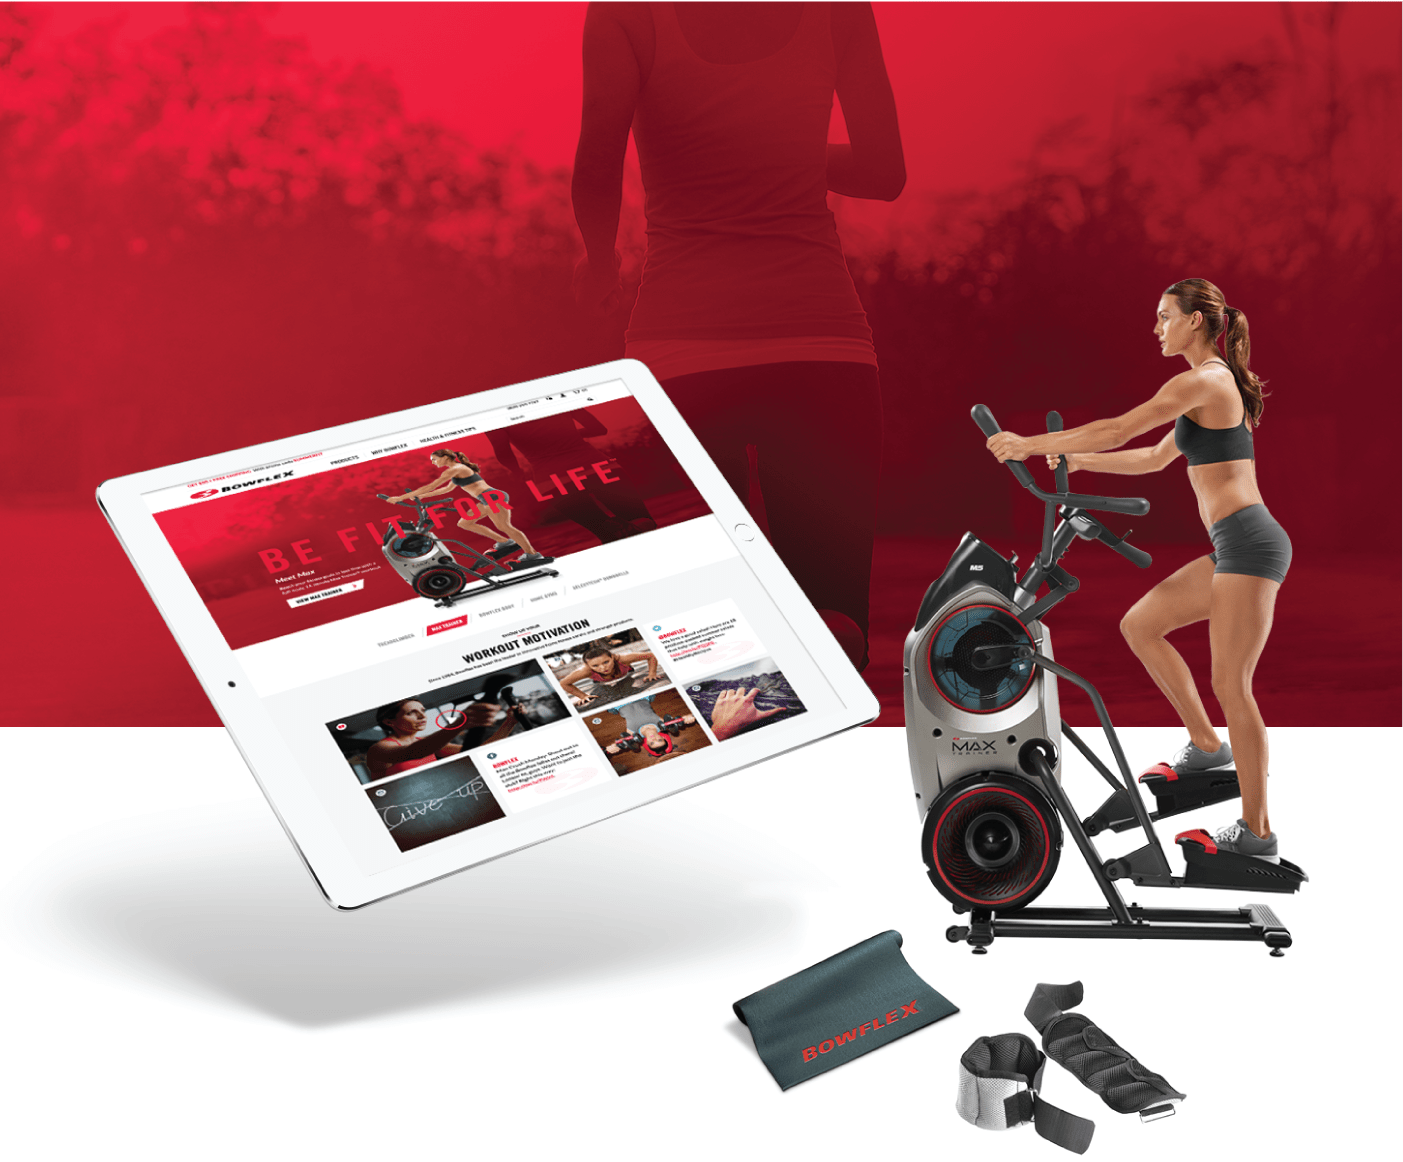 STRENGTHENING THE BOWFLEX DIGITAL EXPERIENCE